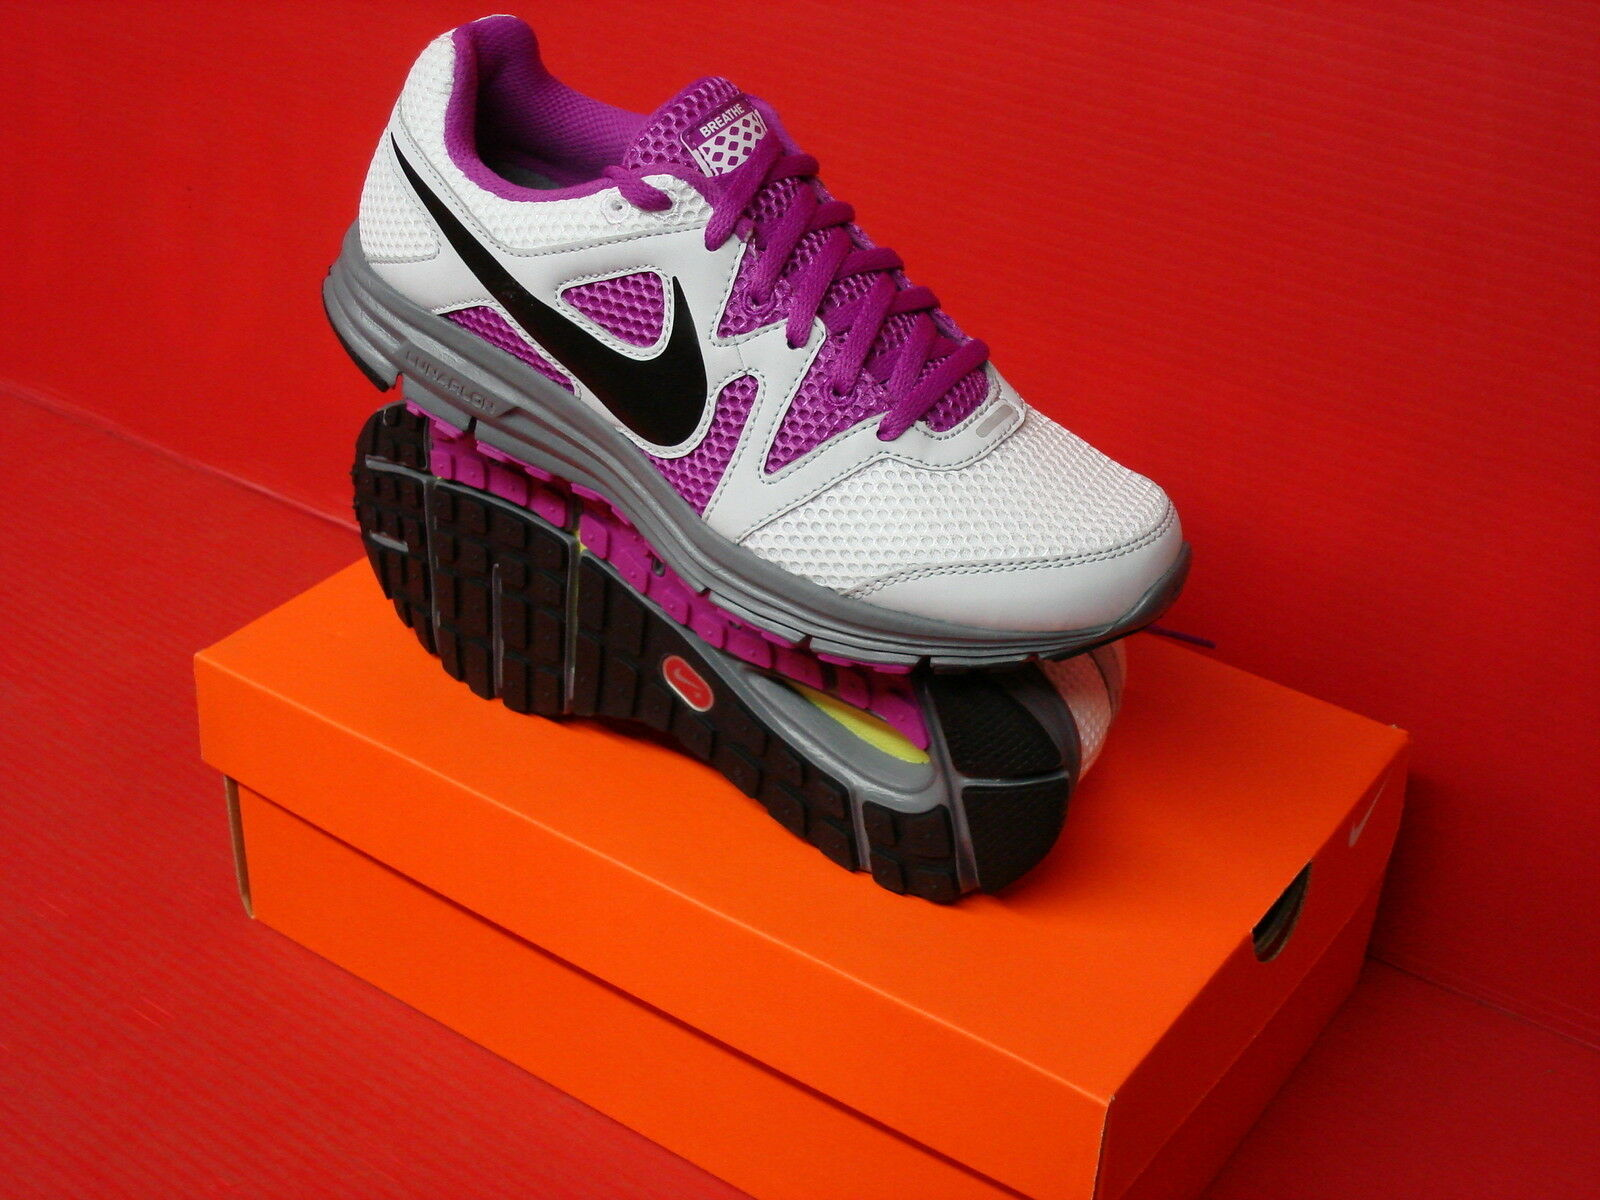 NIKE WMNS LUNARFLY +3 BREATHE WOMENS RUNNING 510791 Stealth/Wht-Cl Grey-Prsm Bl - ...,Wht/Blk-Magenta-Cool Grey - 16...